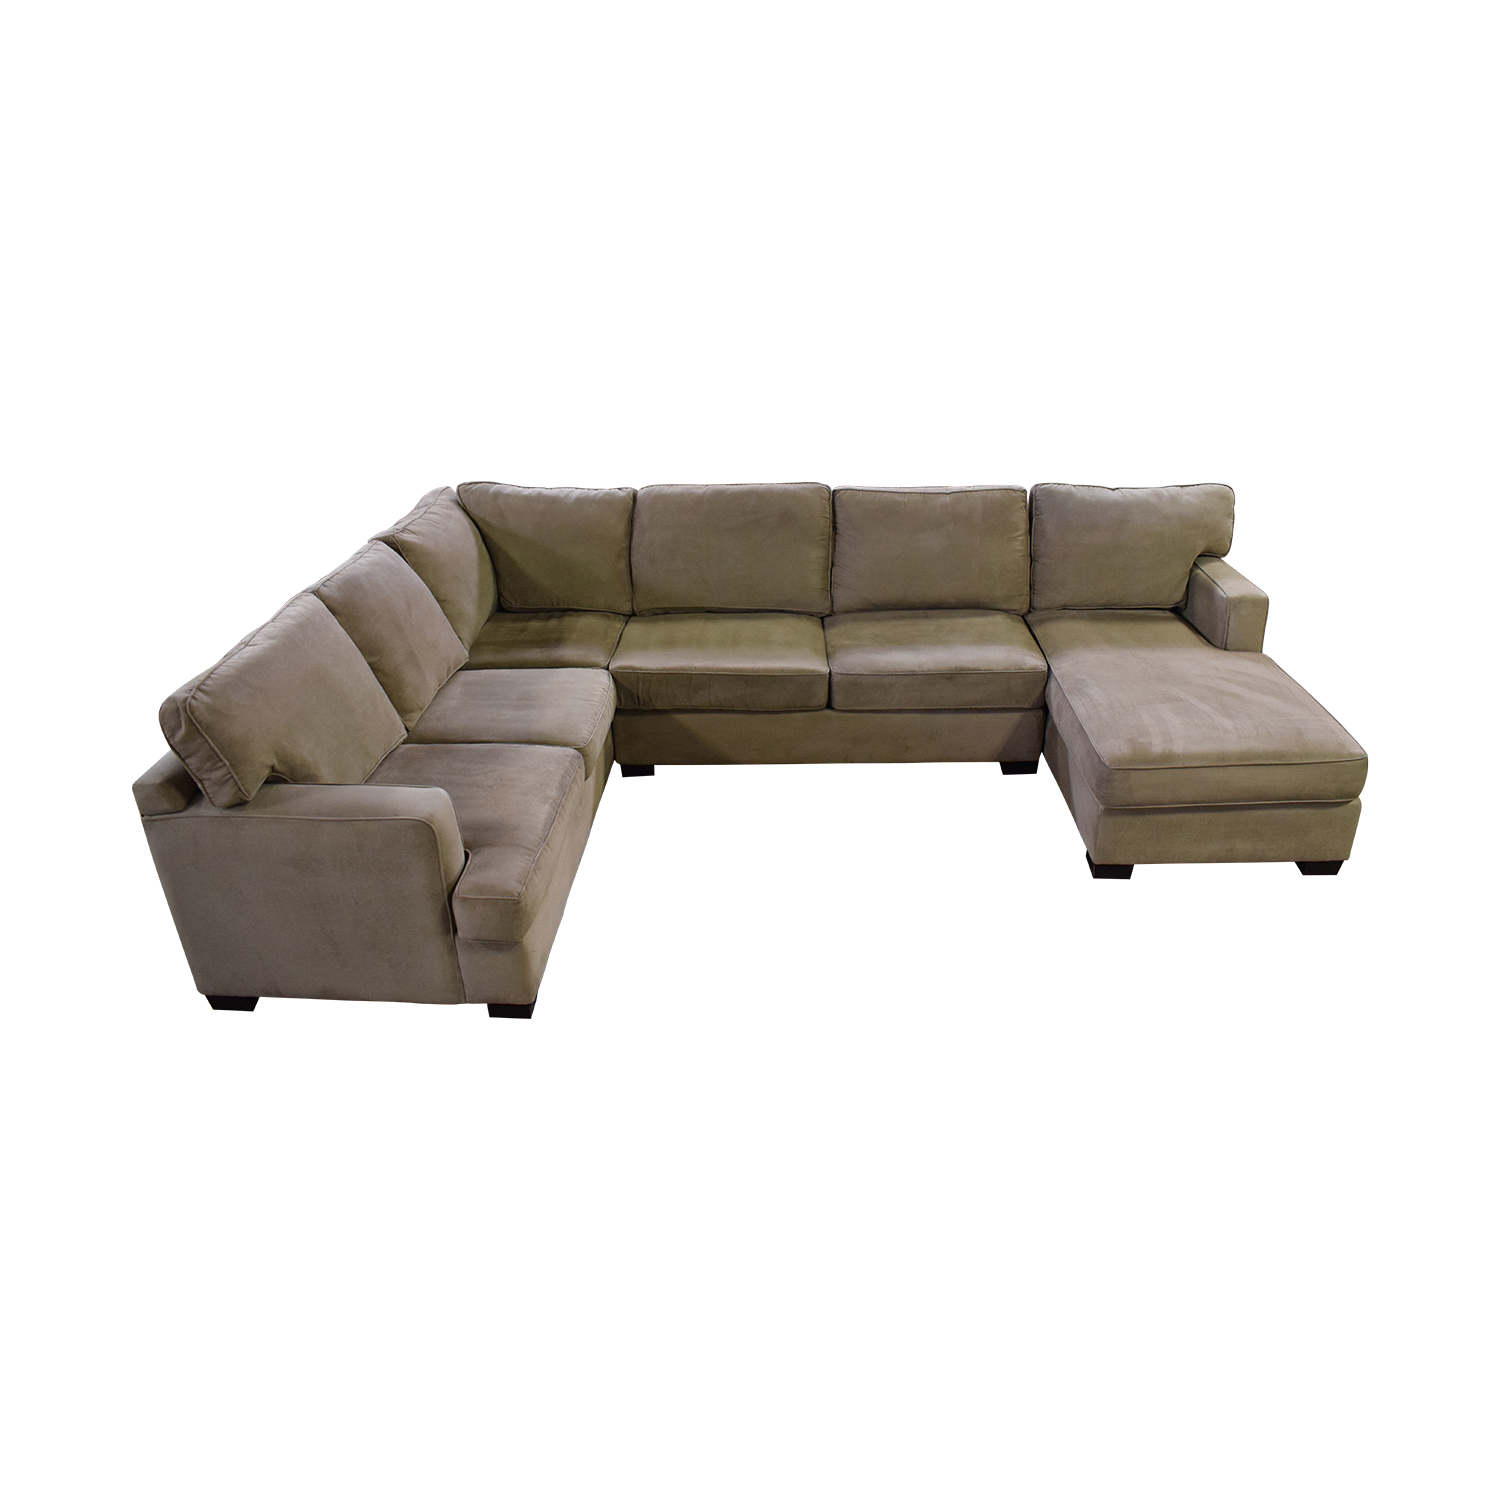 Bloomingdale's Bloomingdale's Sectional Sofa with Chaise nj